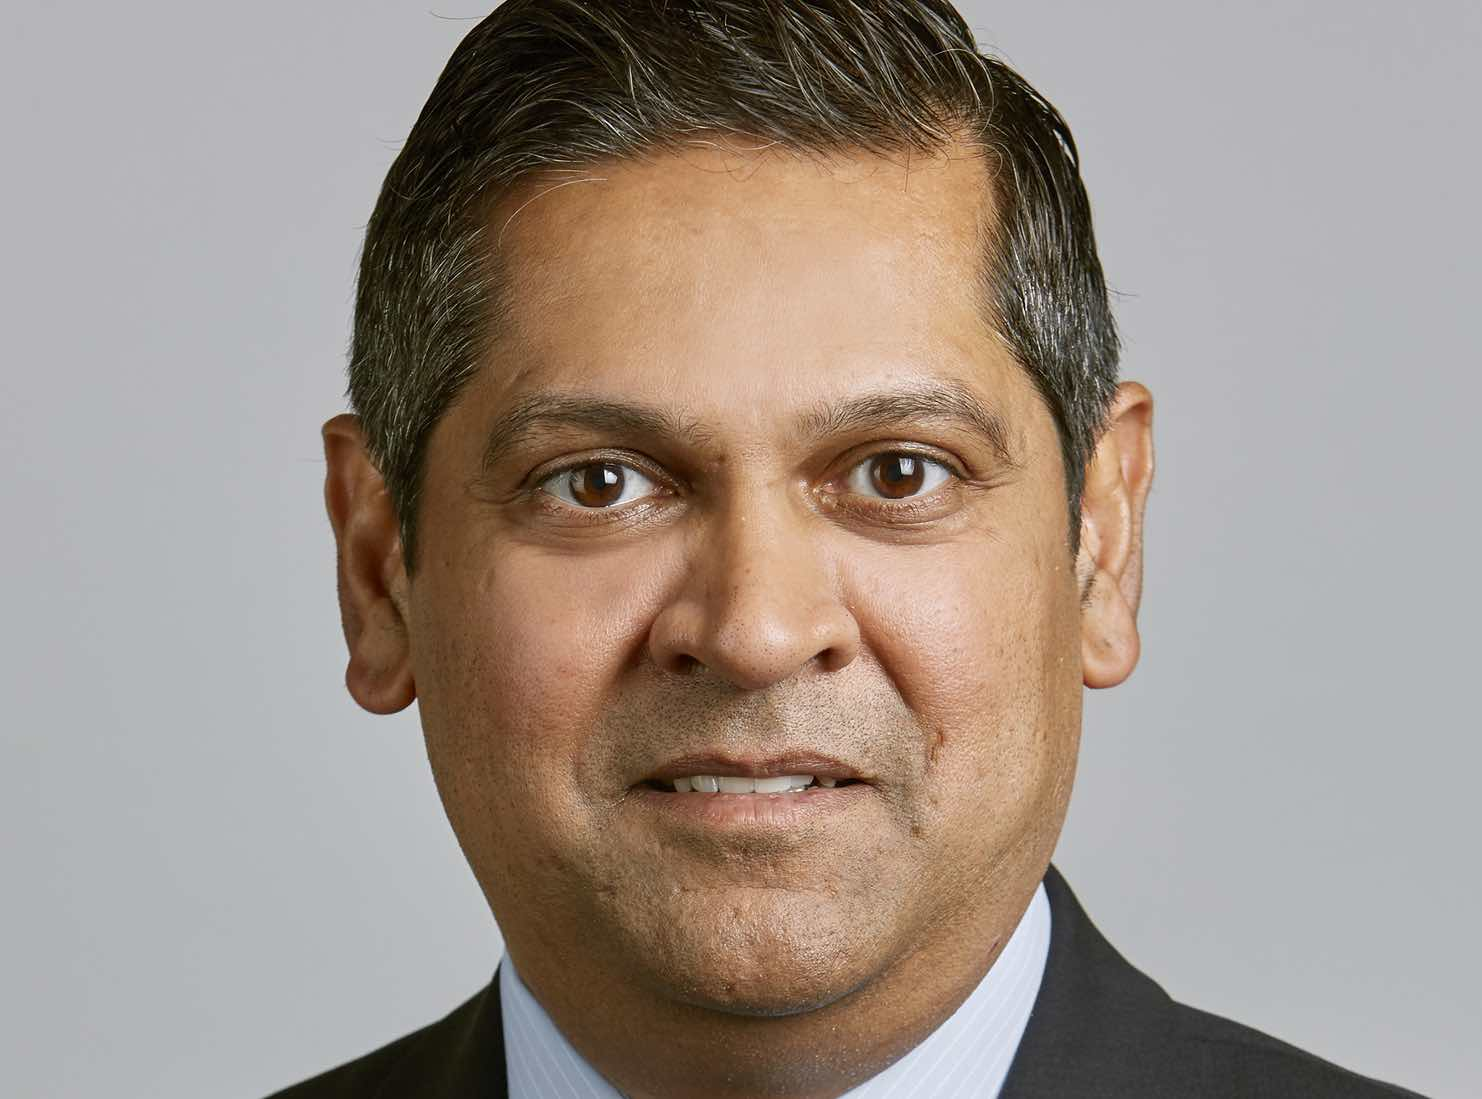 AI and You—PwC Strategy&'s Kumar Krishnamurthy Discusses How AI is Transforming the Workforce